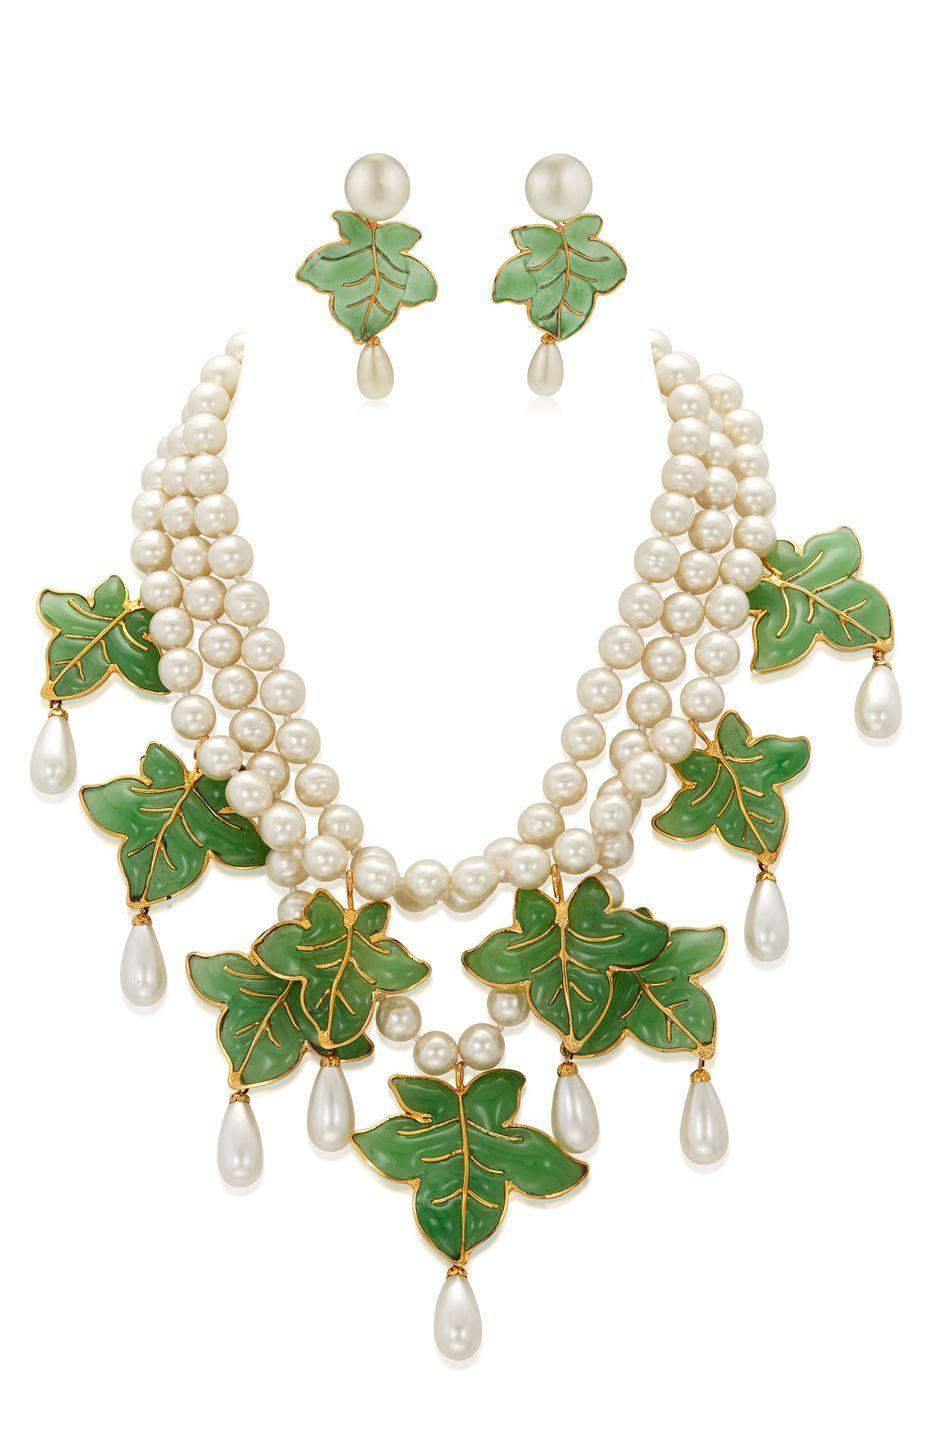 <p>Anticipated to be one of the most exciting jewelry selections in the auction, this set is estimated to be worth $4,000 to $6,000.</p>